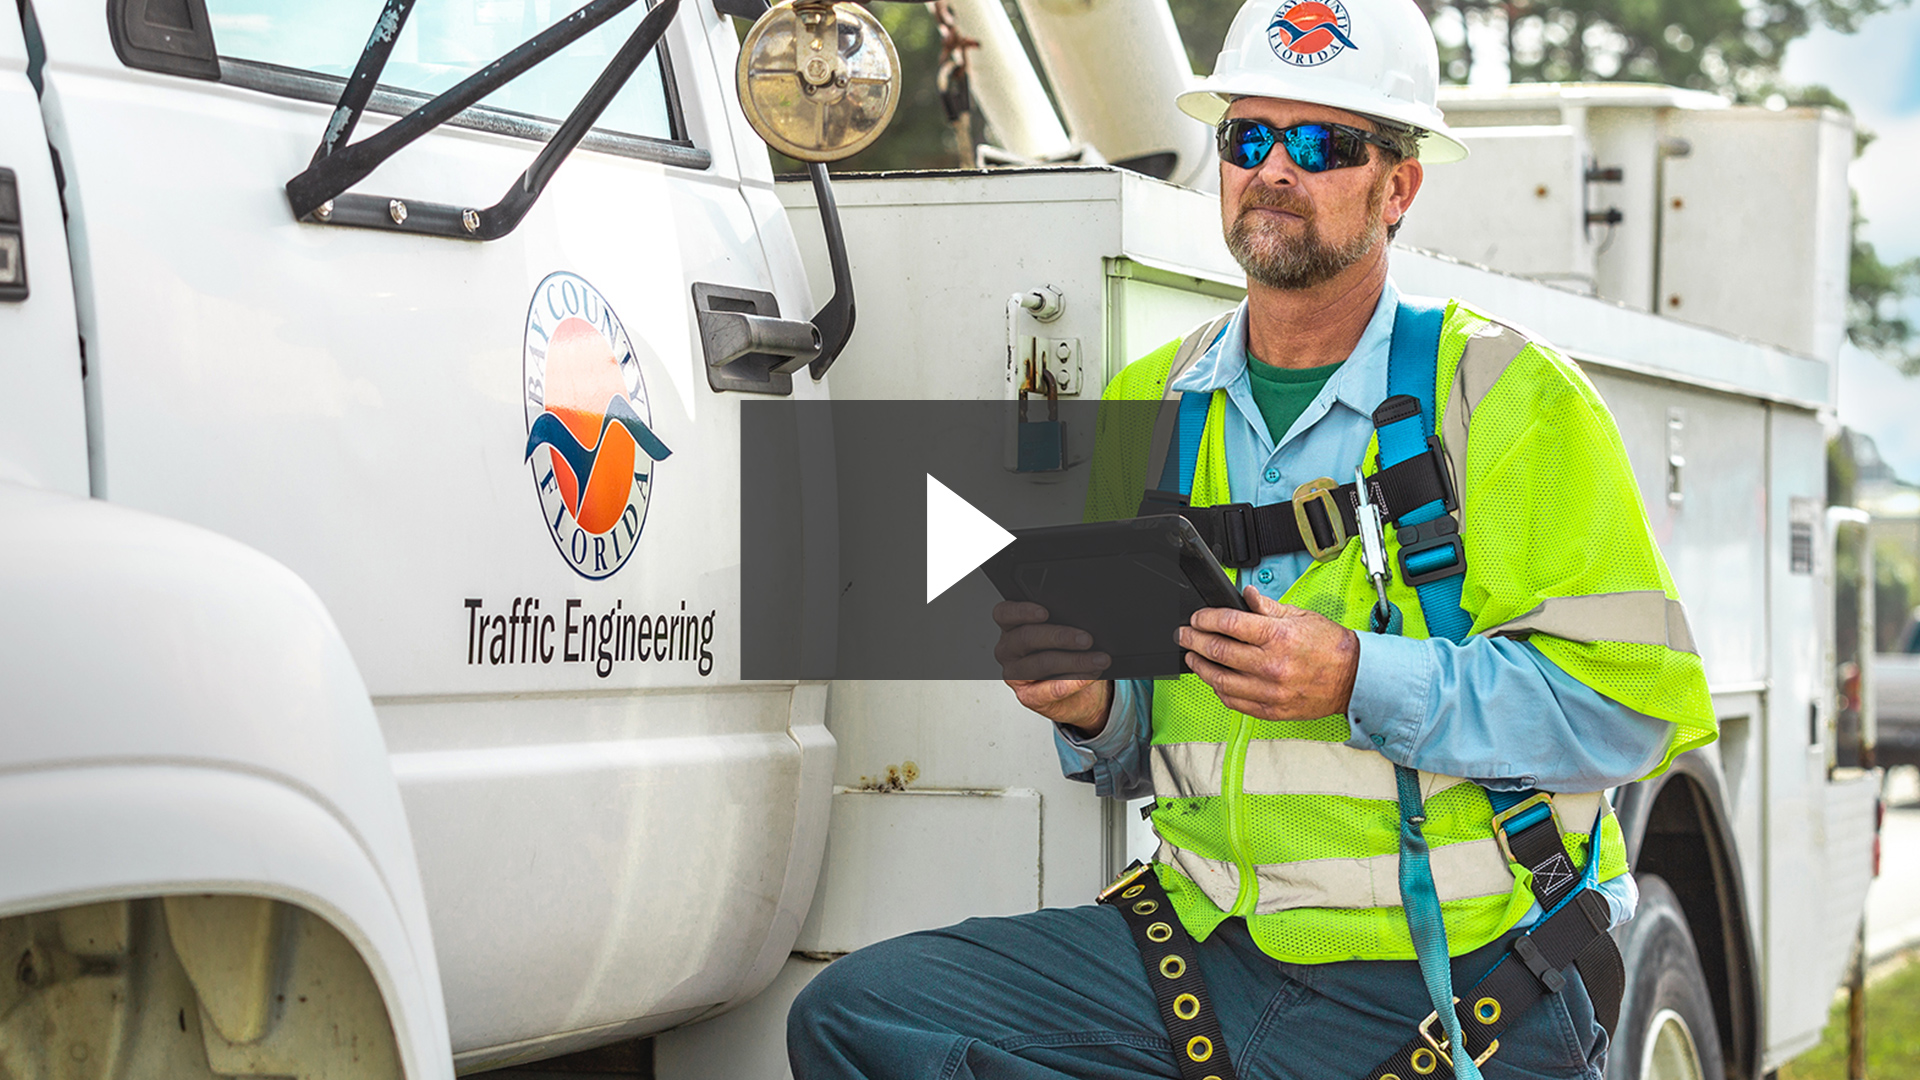 How We Work: Bay County, FL Video Thumbnail